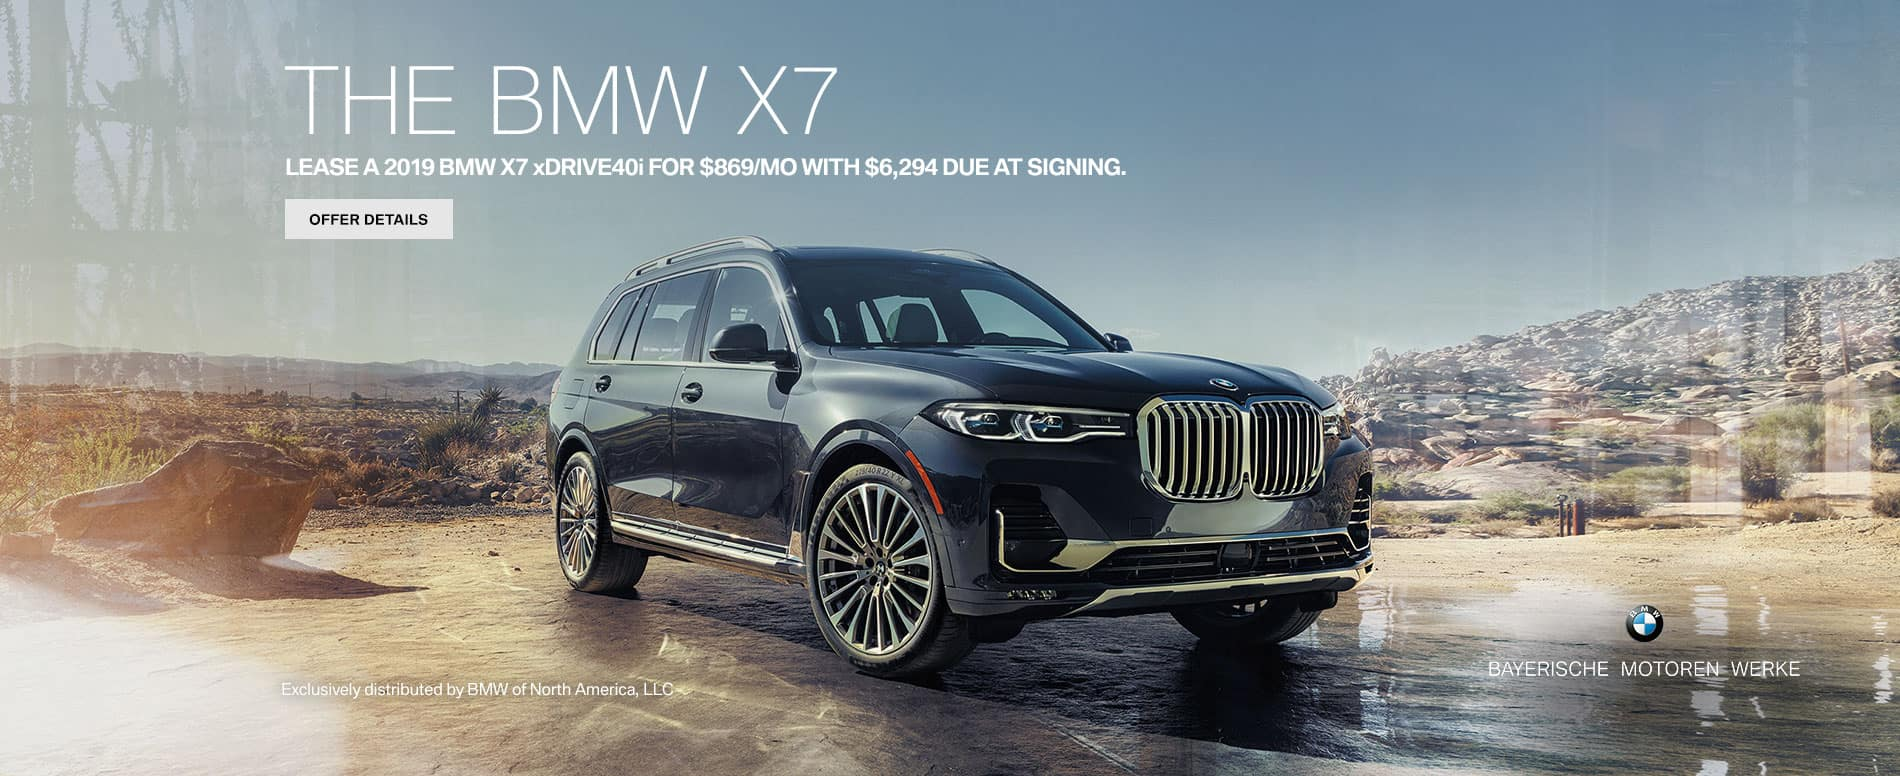 5THPOSITION_ER_NOV_PUSH_BMW_X7_869